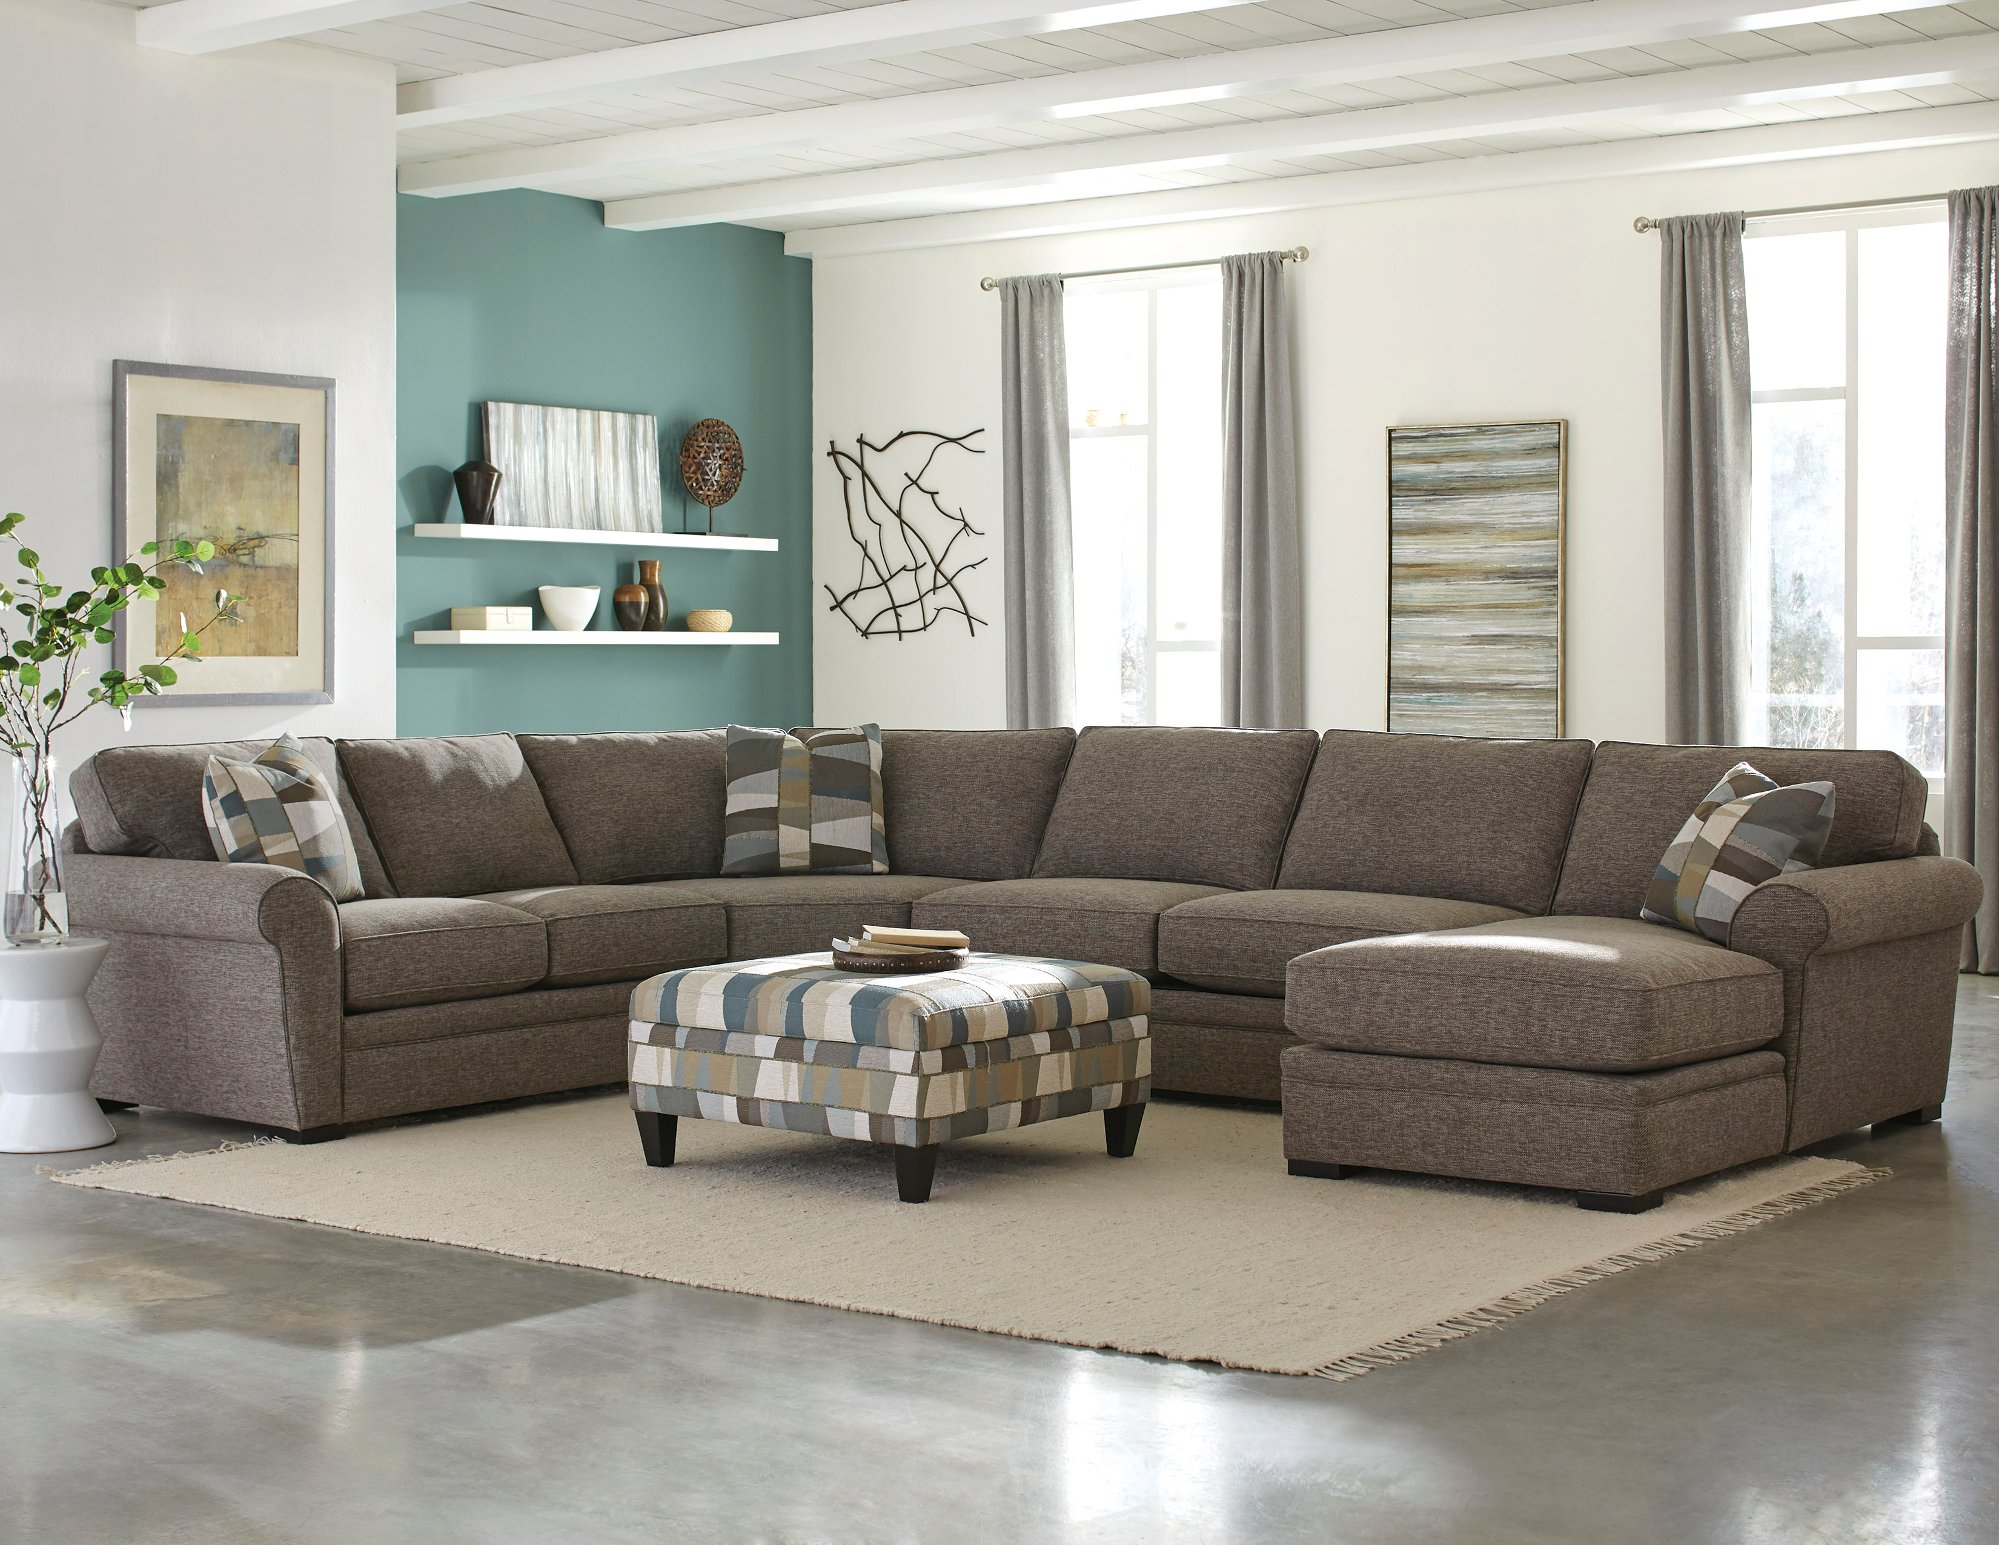 Brown-4-Piece-Sectional-Sofa-with-RAF-Chaise---Orion-rcwilley-image1